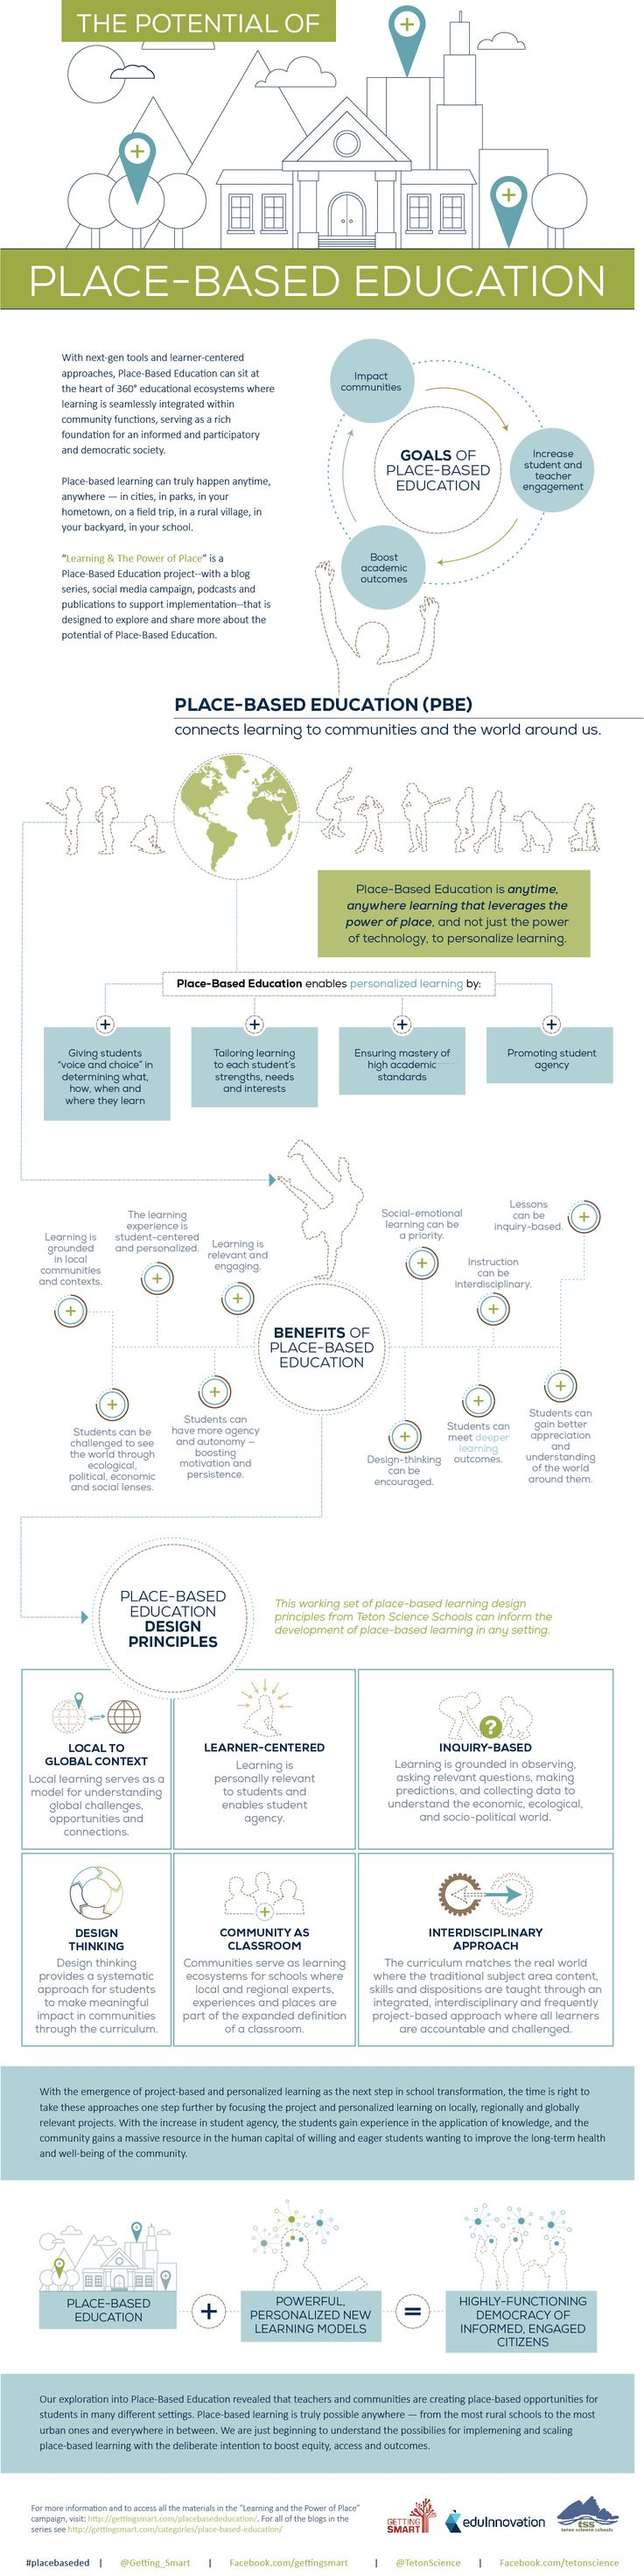 The Potential of Place-Based Education Infographic - http://elearninginfographics.com/place-based-education-potential-infographic/